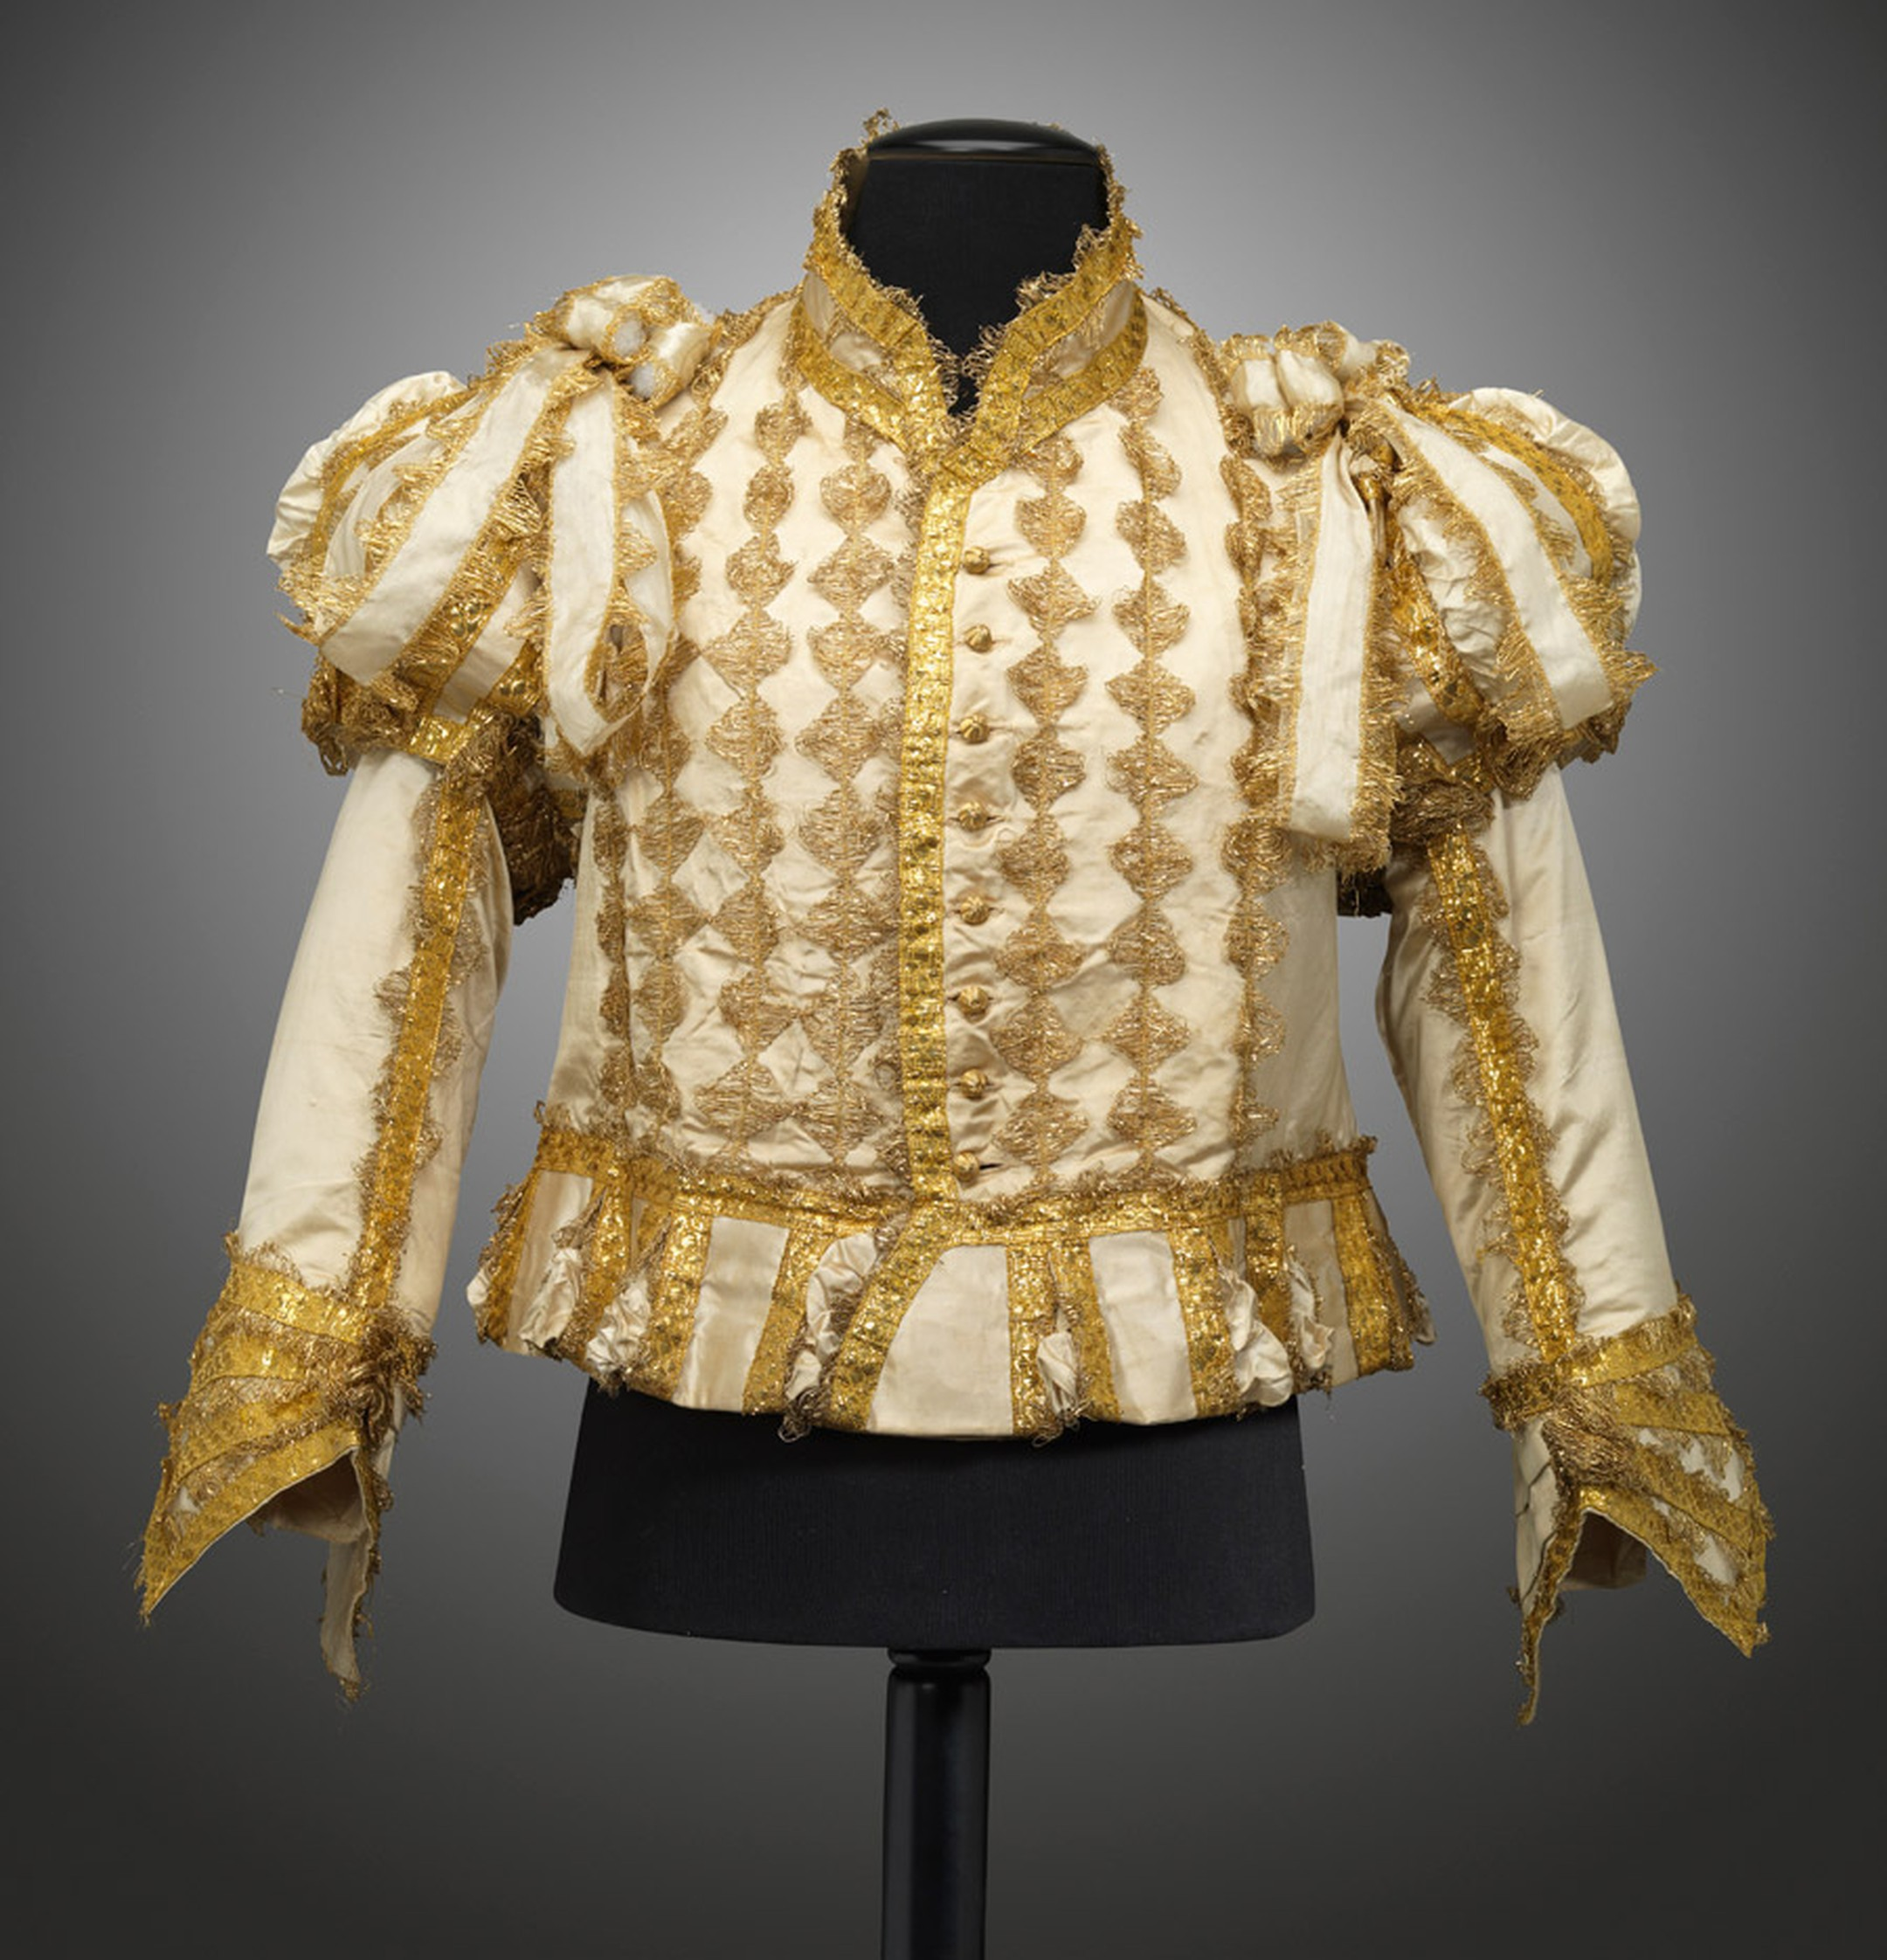 goldsmiths-silk-and-gold-jerkin-for-the-coronation-of-george-iv-jpg__2160x0_q90_crop-scale_subsampling-2_upscale-false